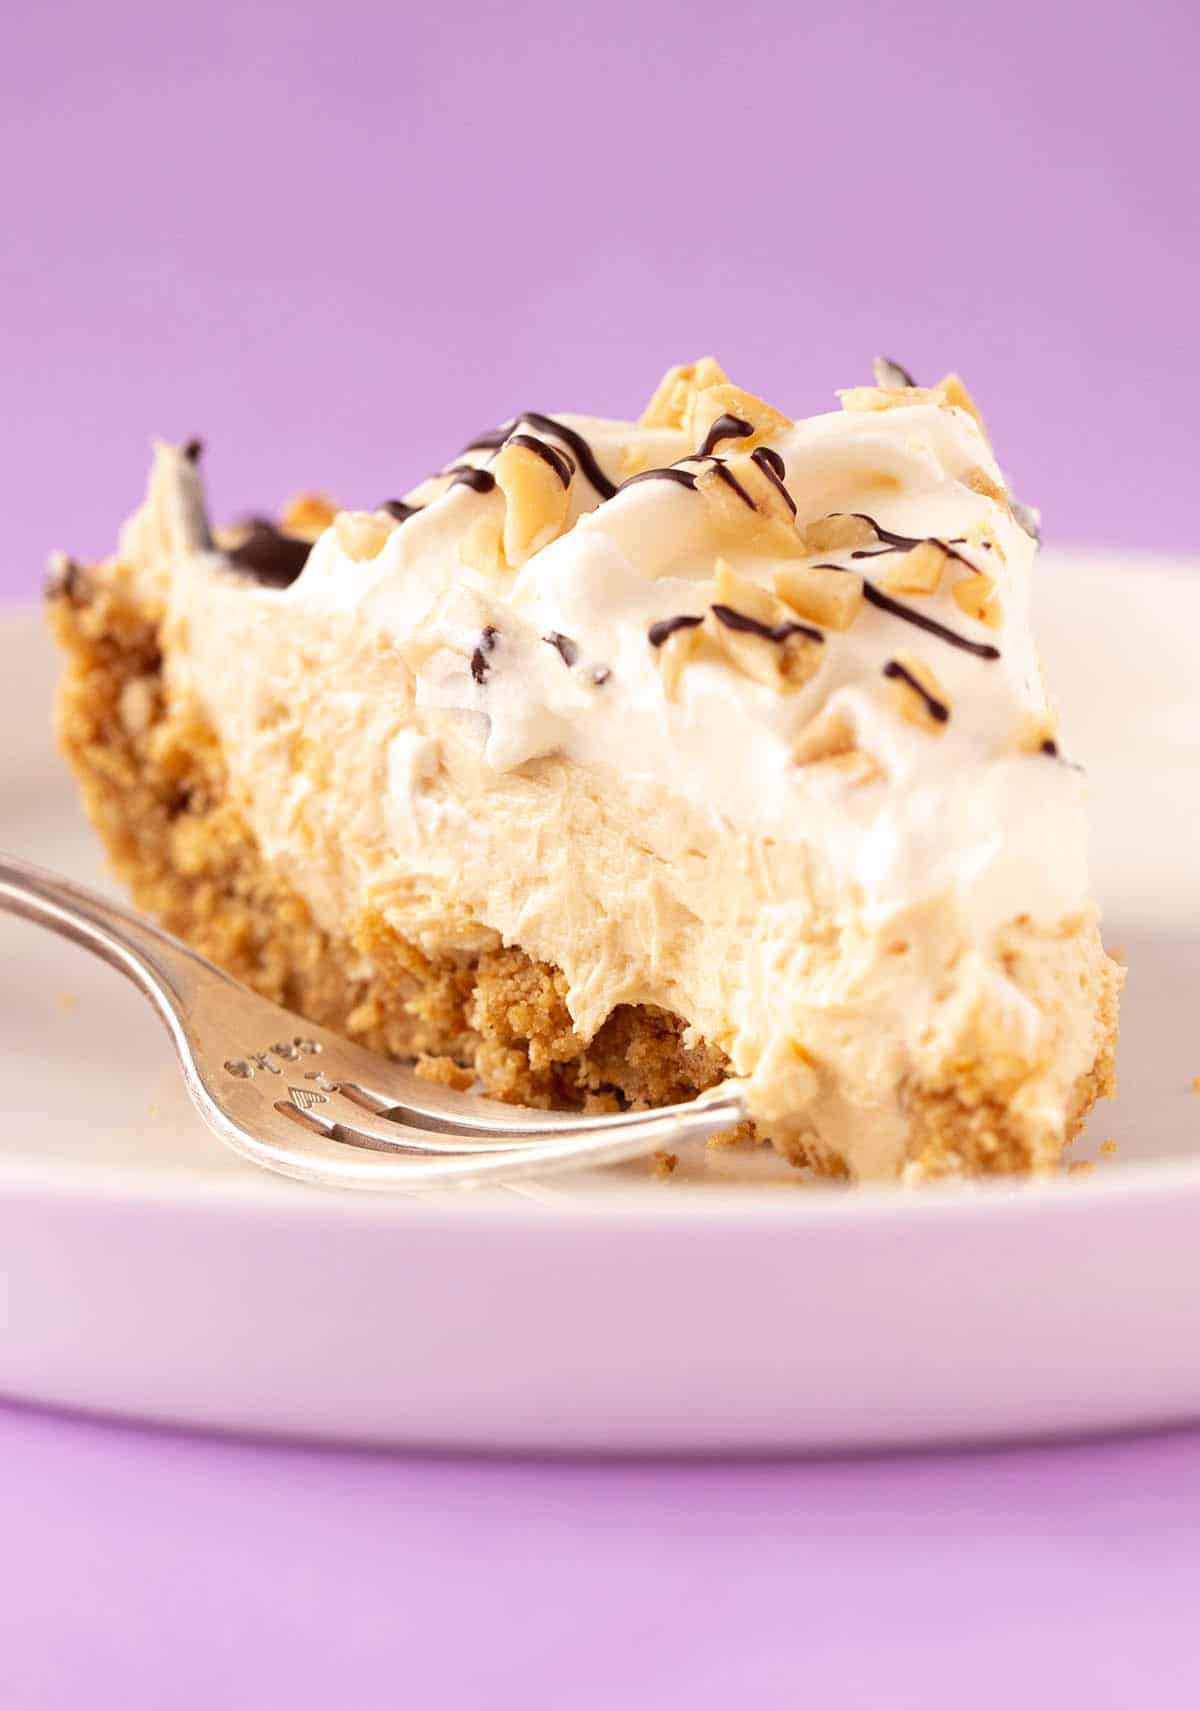 A slice of Peanut Butter Pie on a white plate